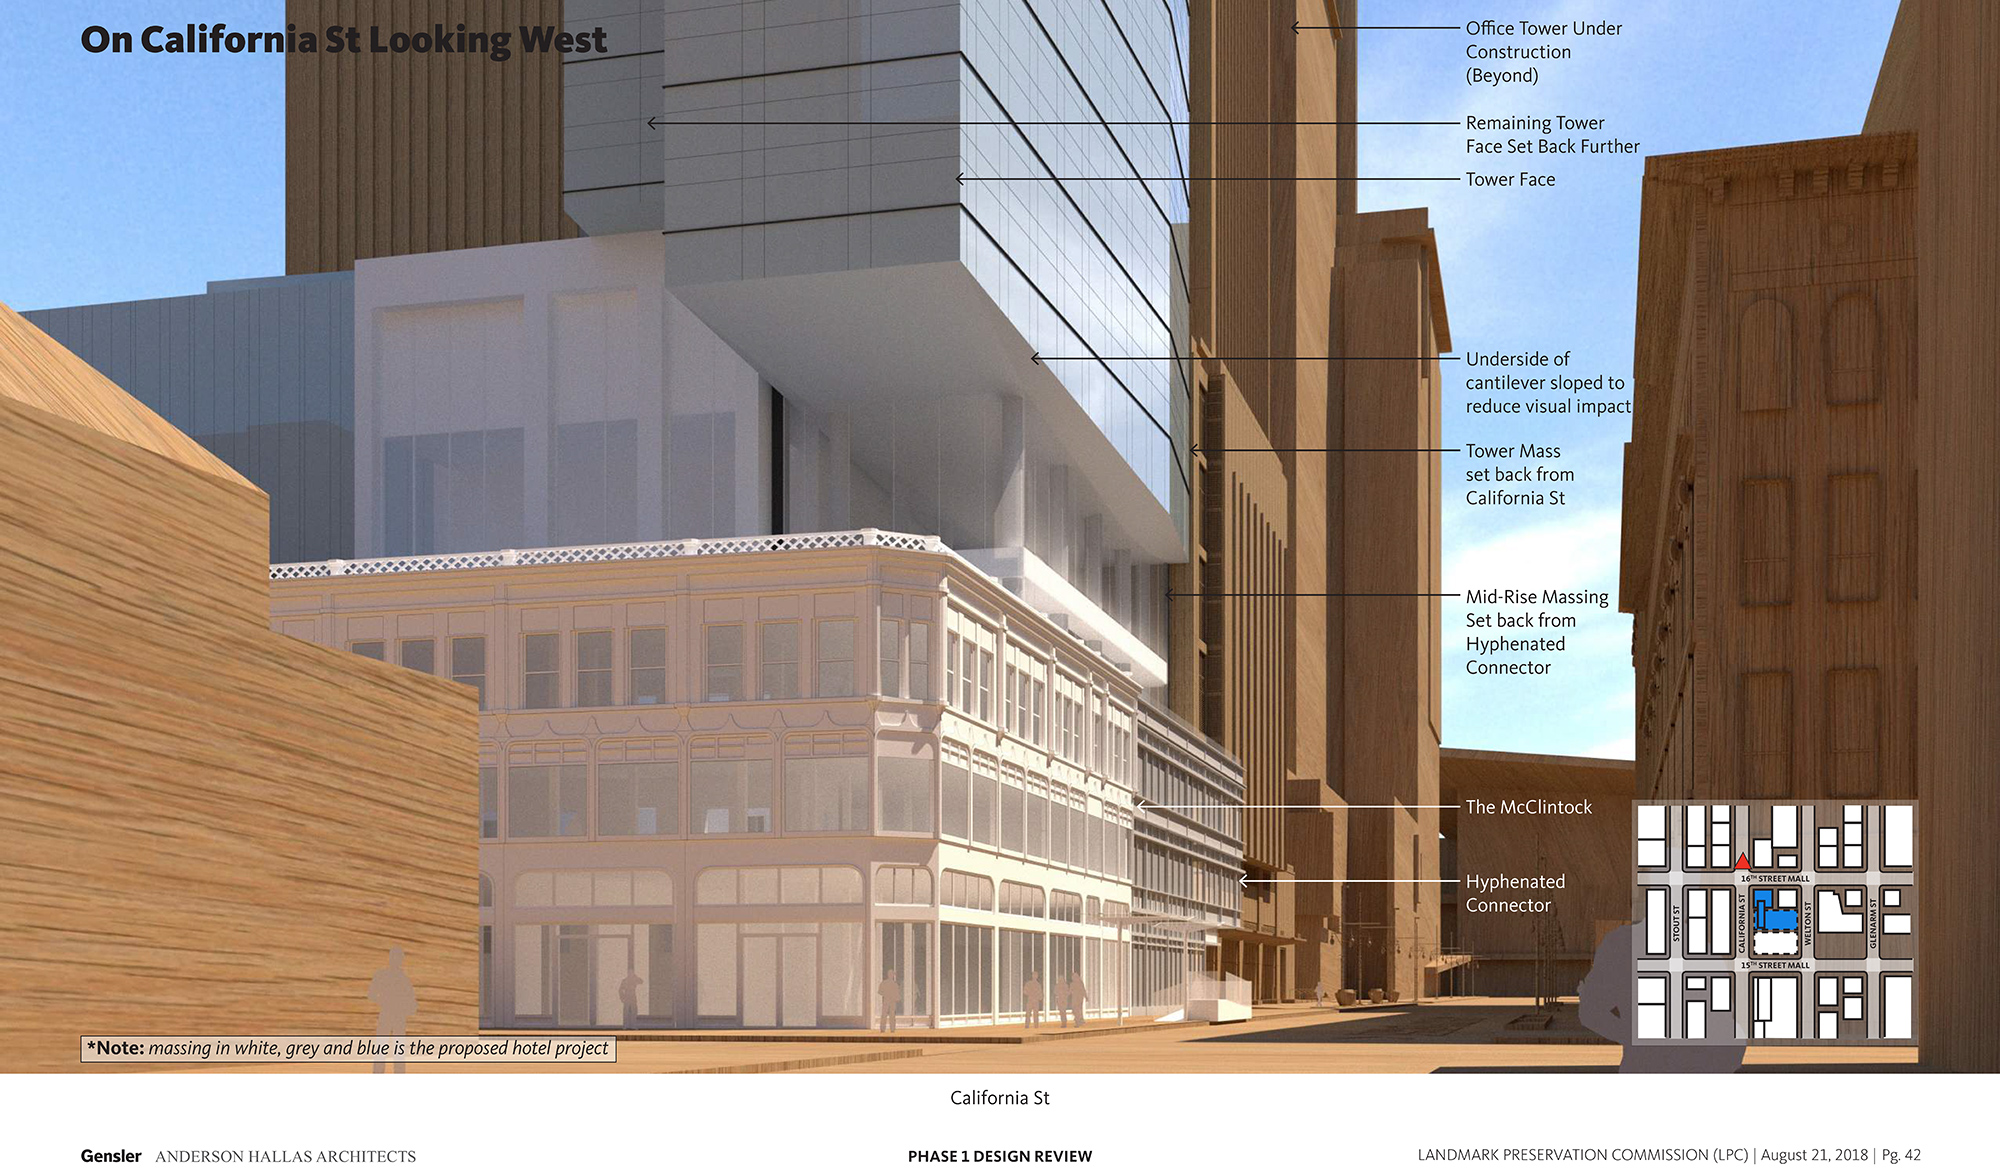 Perspective along California Street of the proposed Block 162 hotel, courtesy Gensler/Anderson Hallas Architects